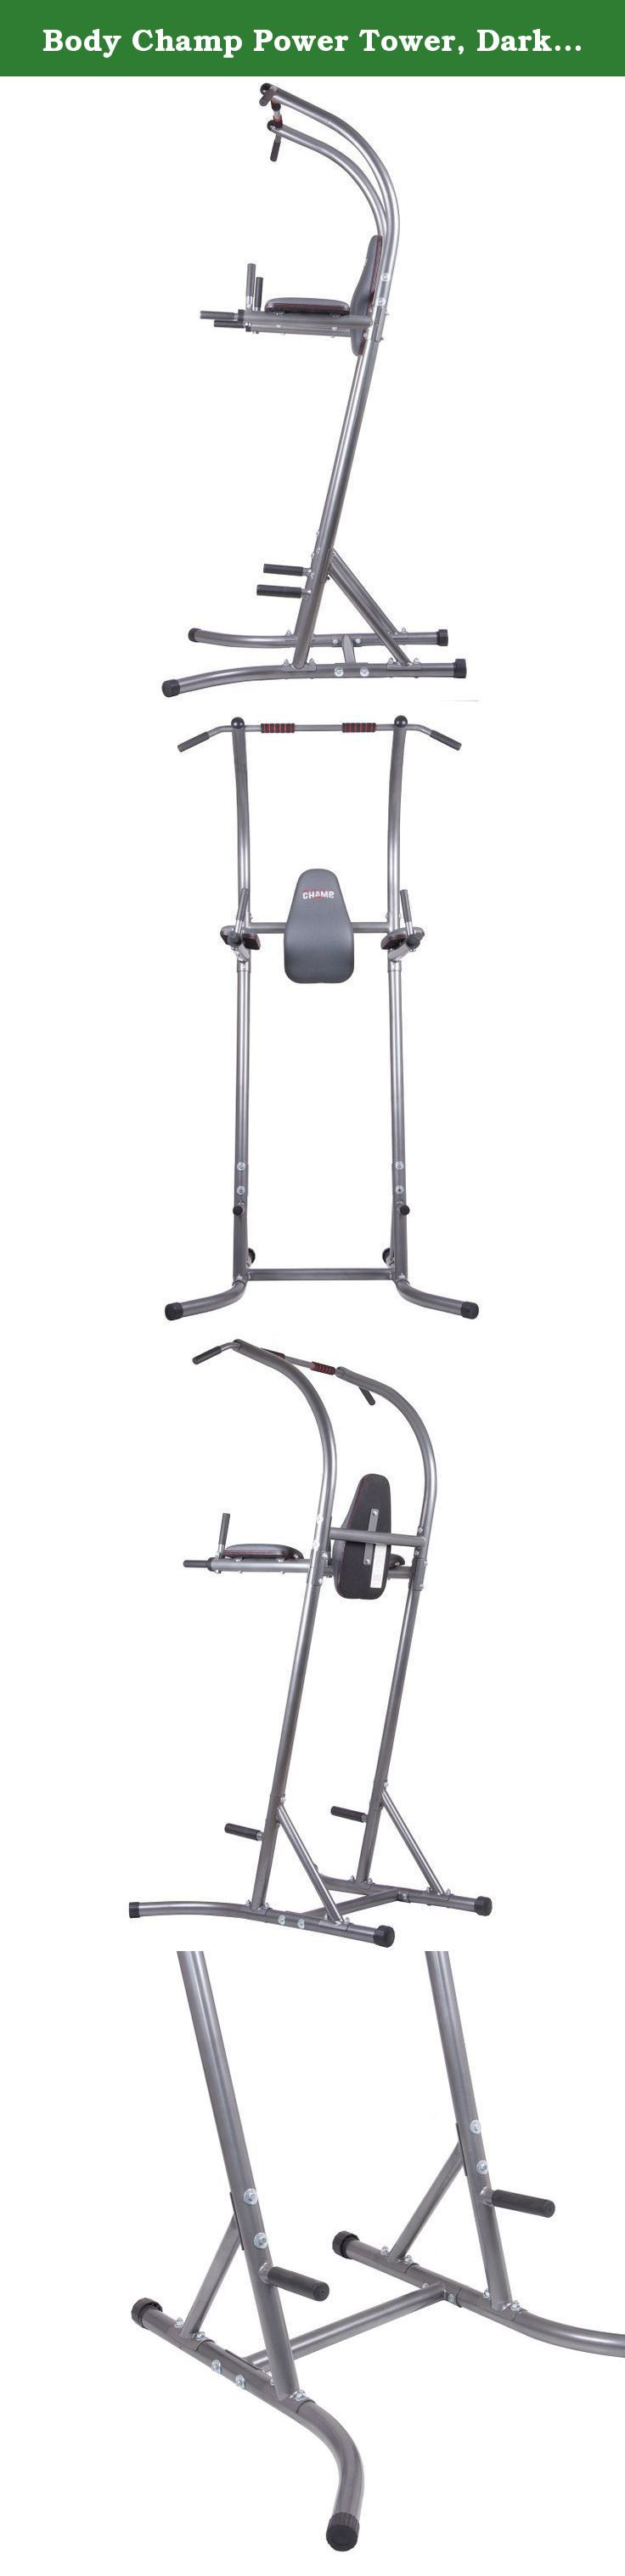 Body Champ Power Tower, Dark Gray/Black. The Body Champ PT620 Power Tower is a versatile total strength machine. Maximize your workout routines with exercise circuit stations including: pull-ups/chin-ups/vertical knee raises/dips/push-ups. Ergonomically designed and equipped with comfort-driven back and forearm pads as well as hand foam grips. Dip handles have fold-down capability for clear and free chin up exercises.